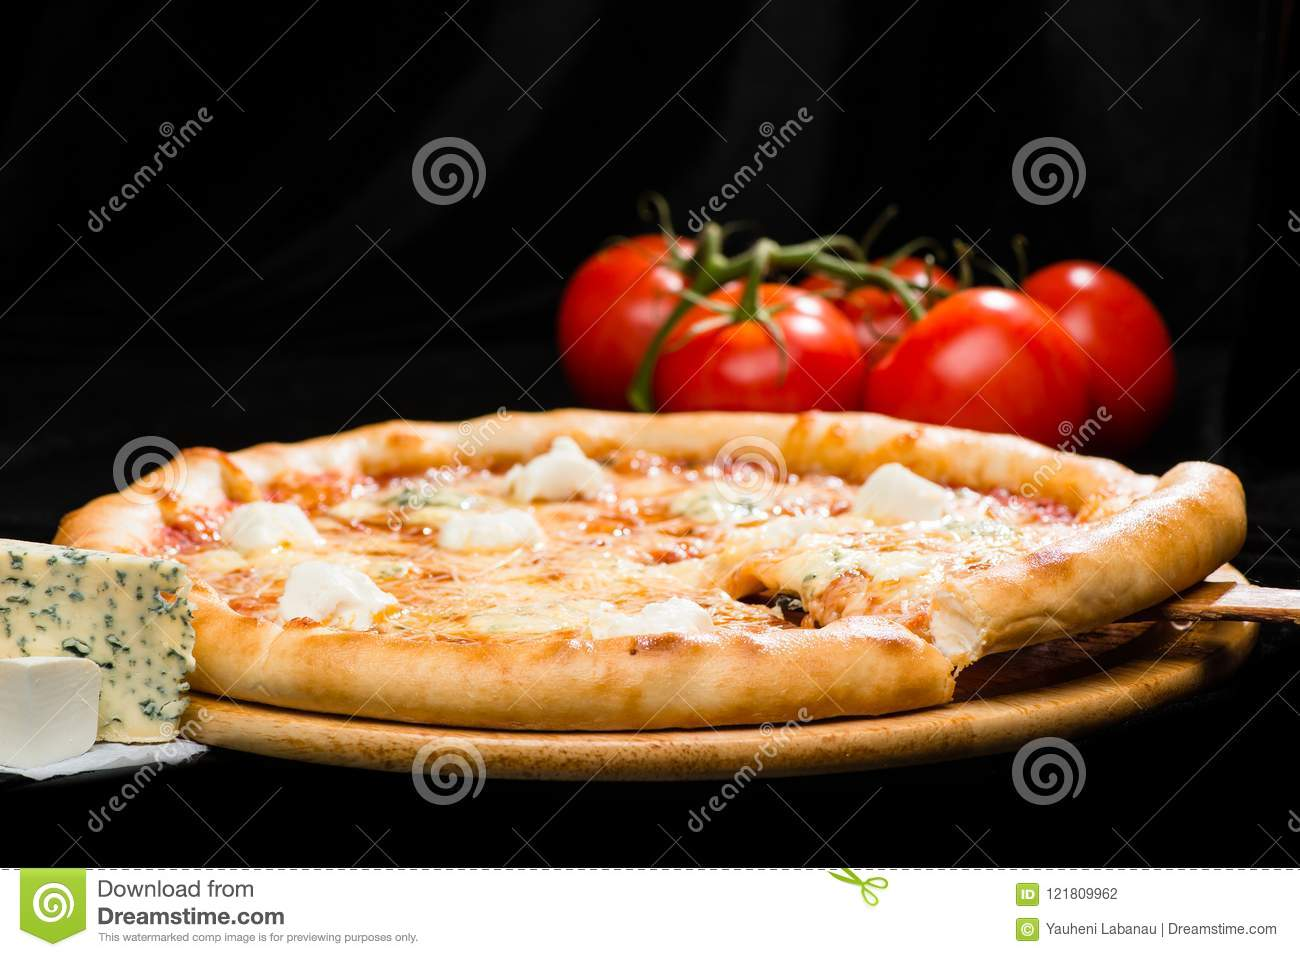 Selective Focus On Sliced Piece Of Appetizing Italian Cheese Pizza With Mozzarella Gorgonzola Emmental And Parmesan Cheese On D Stock Photo Image Of Mozzarella Crust 121809962,Part Time Data Entry Jobs From Home